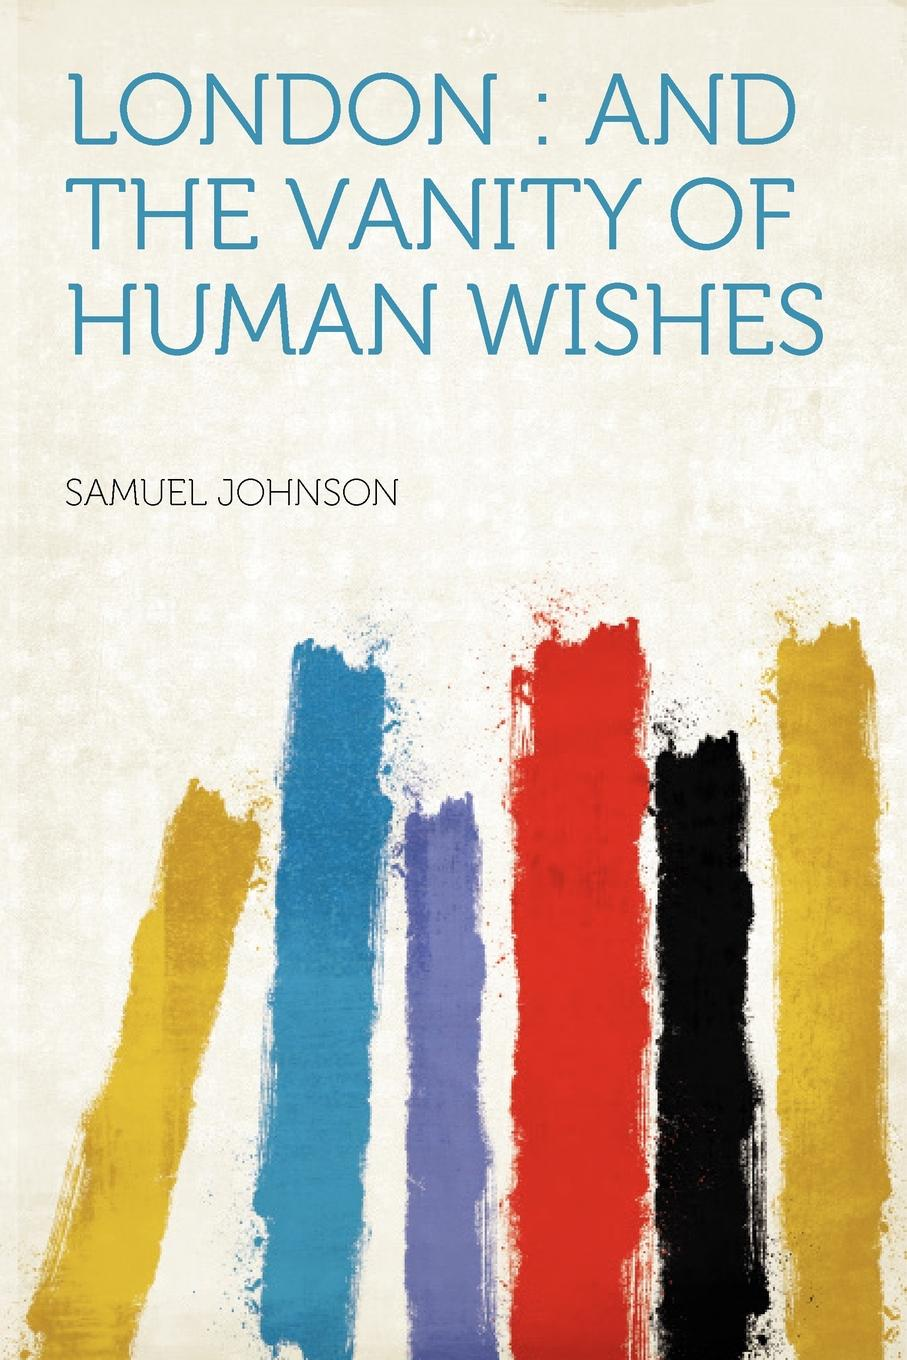 Samuel Johnson London. and the Vanity of Human Wishes johnson samuel london and the vanity of human wishes